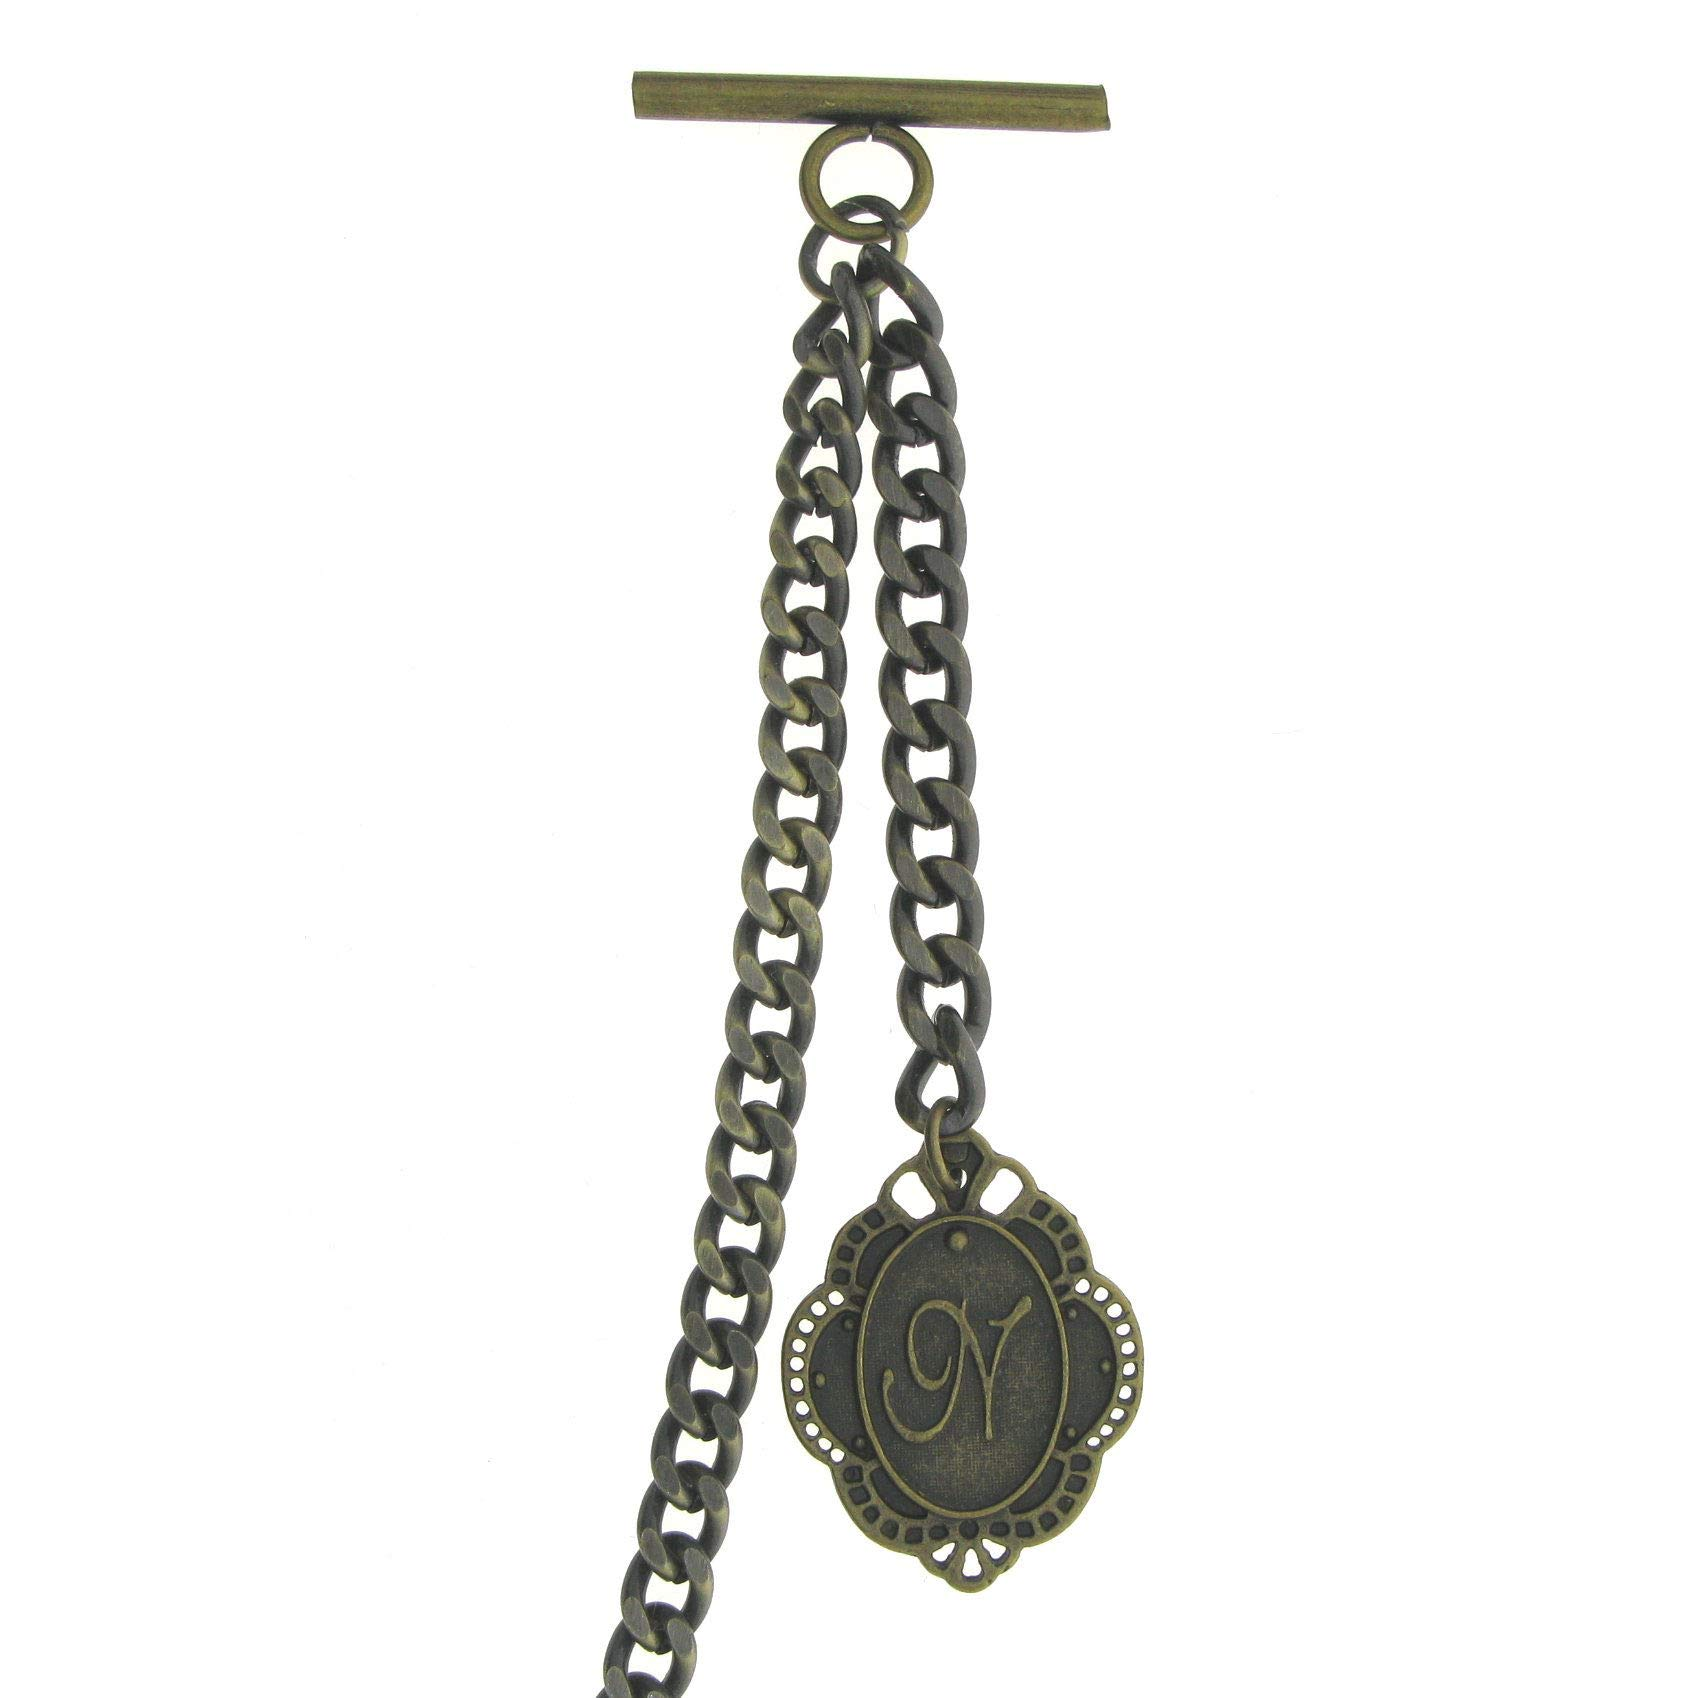 Albert Chain Pocket Watch Curb Link Chain Antique Brass Color + Alphabet N Initial Letter Fob T Bar AC84 by watchvshop (Image #8)